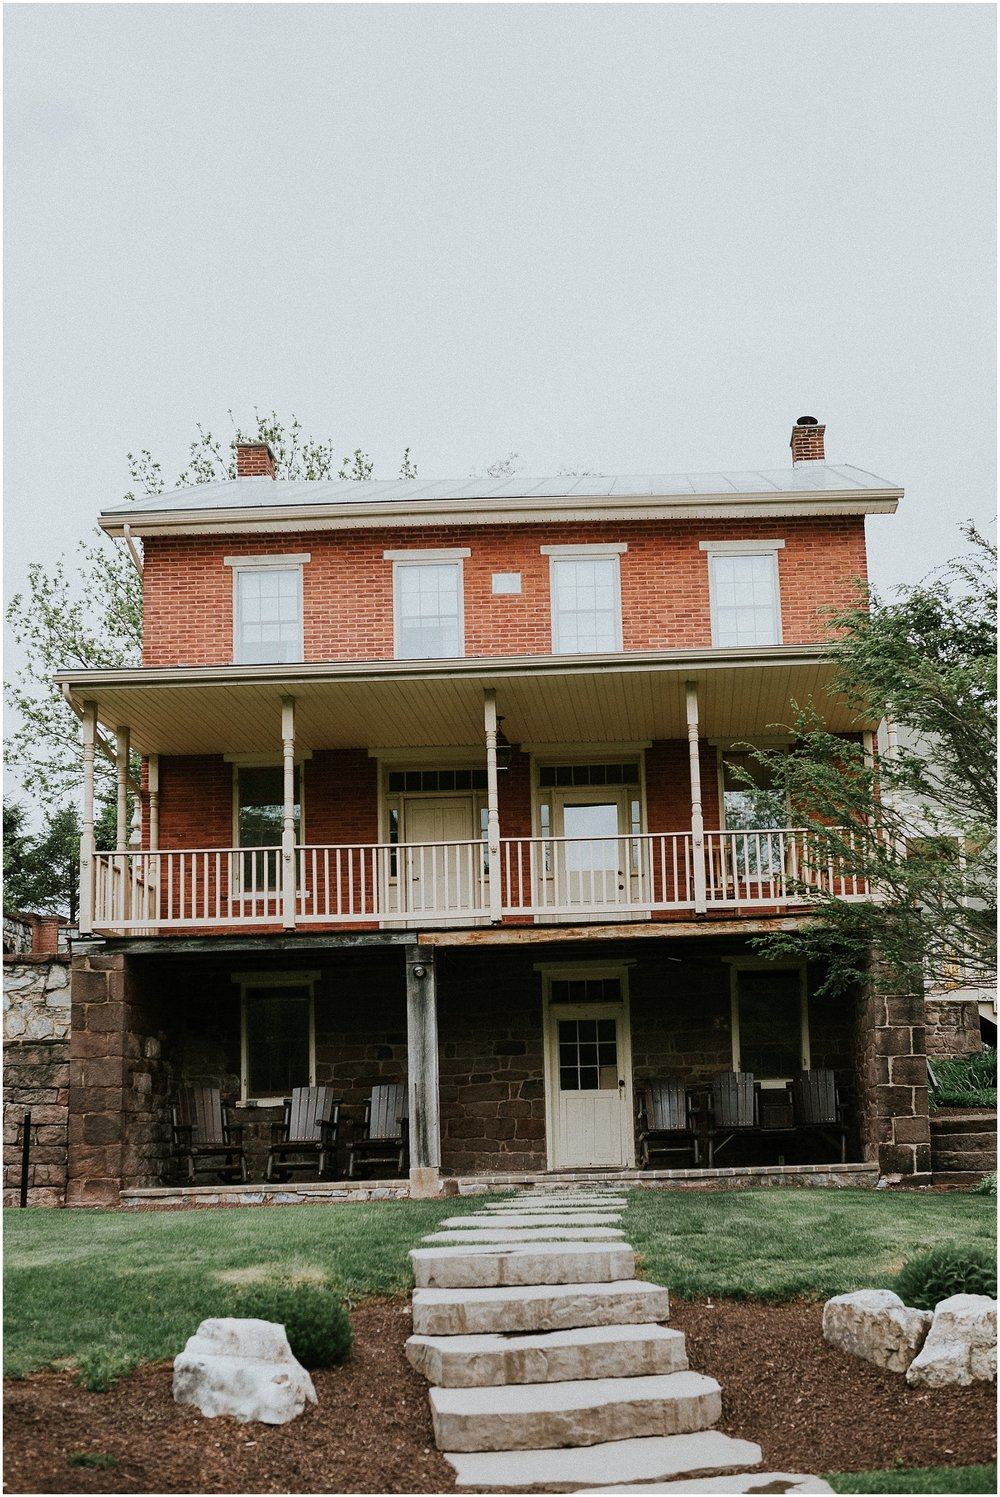 1800s Historic Farmhouse wedding venue at The Historic Acres of Hershey in Hershey Pennsylvania